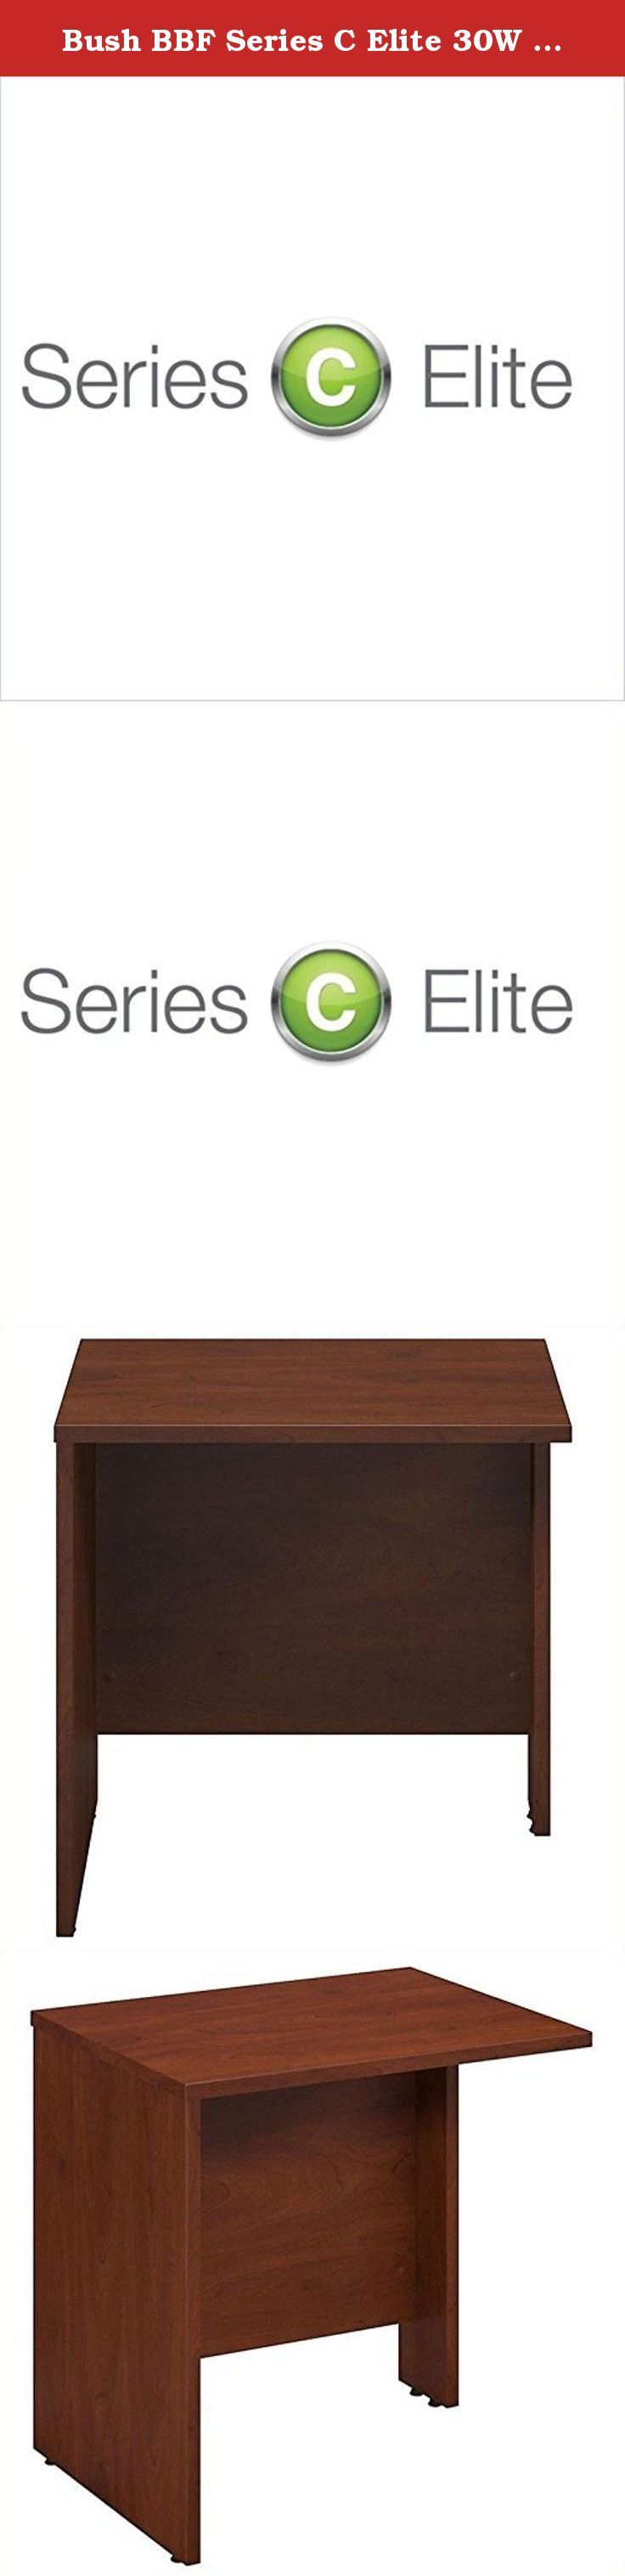 Bush BBF Series C Elite 30W x 24D Bridge-Return in Hansen Cherry. Manage your changing workspace with Series C Elite 30W x 24D Bridge/Return in Hansen Cherry inspires you to personalize your office design. It works as a bridge between two desks or a return to form an L shaped desk configuration. This component must be attached at both ends to a Desk, Credenza and Return or Return/Bridge, and is not freestanding. The thermally fused laminate construction delivers strength and durability…